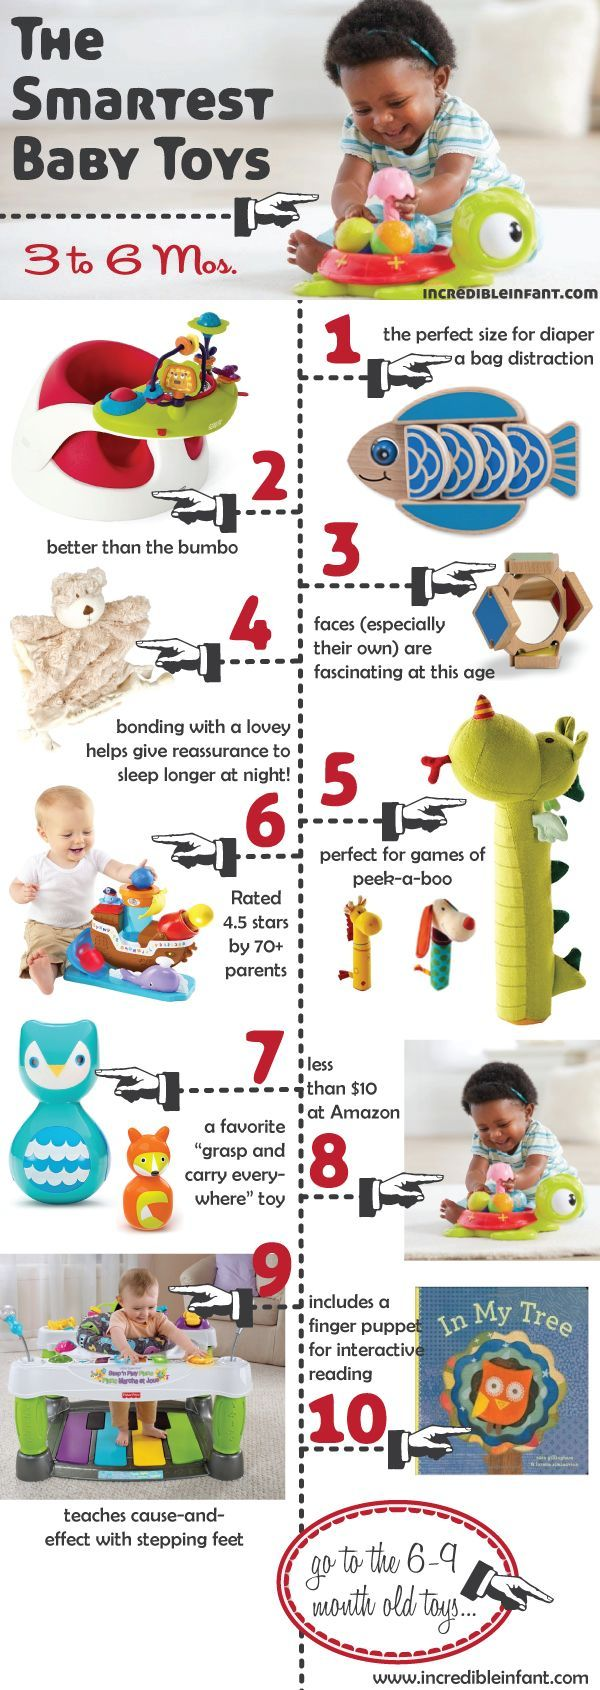 Best crib toys your baby - The Smartest Toys Guide For Your Baby Babytoys Choosingbabytoys Babytoyguide